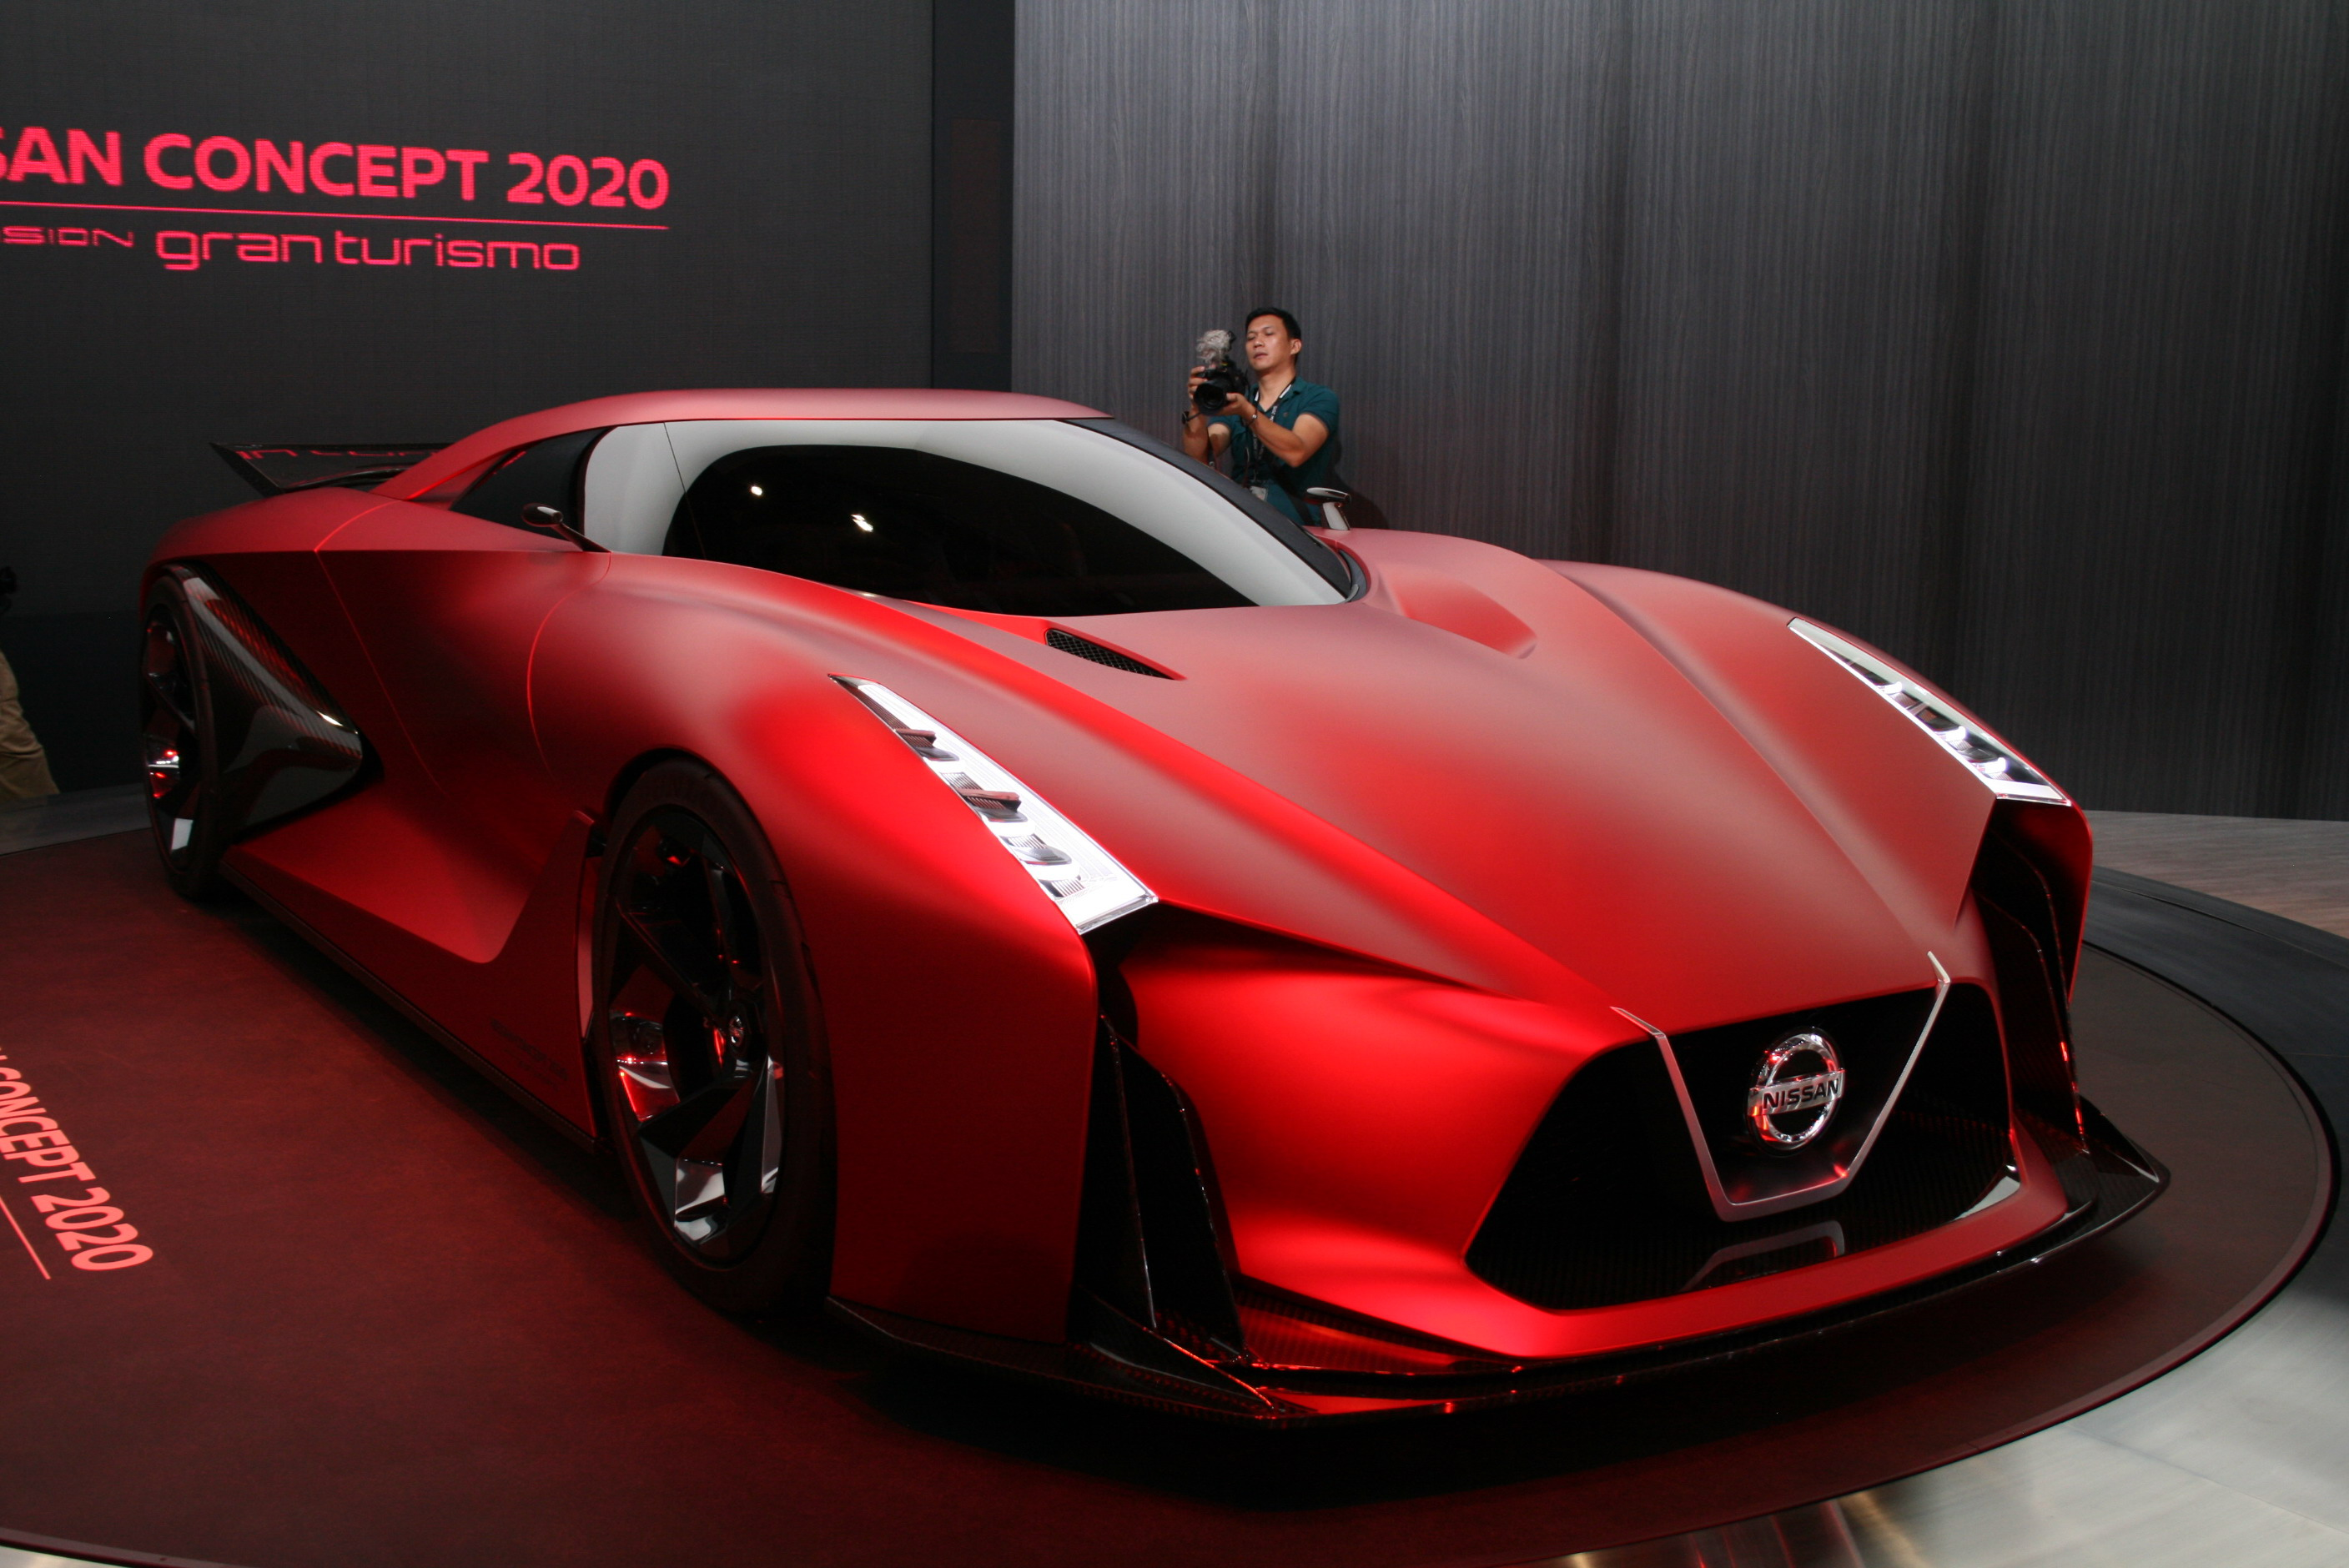 2014 Nissan Concept 2020 Vision Gran Turismo | Top Speed. »